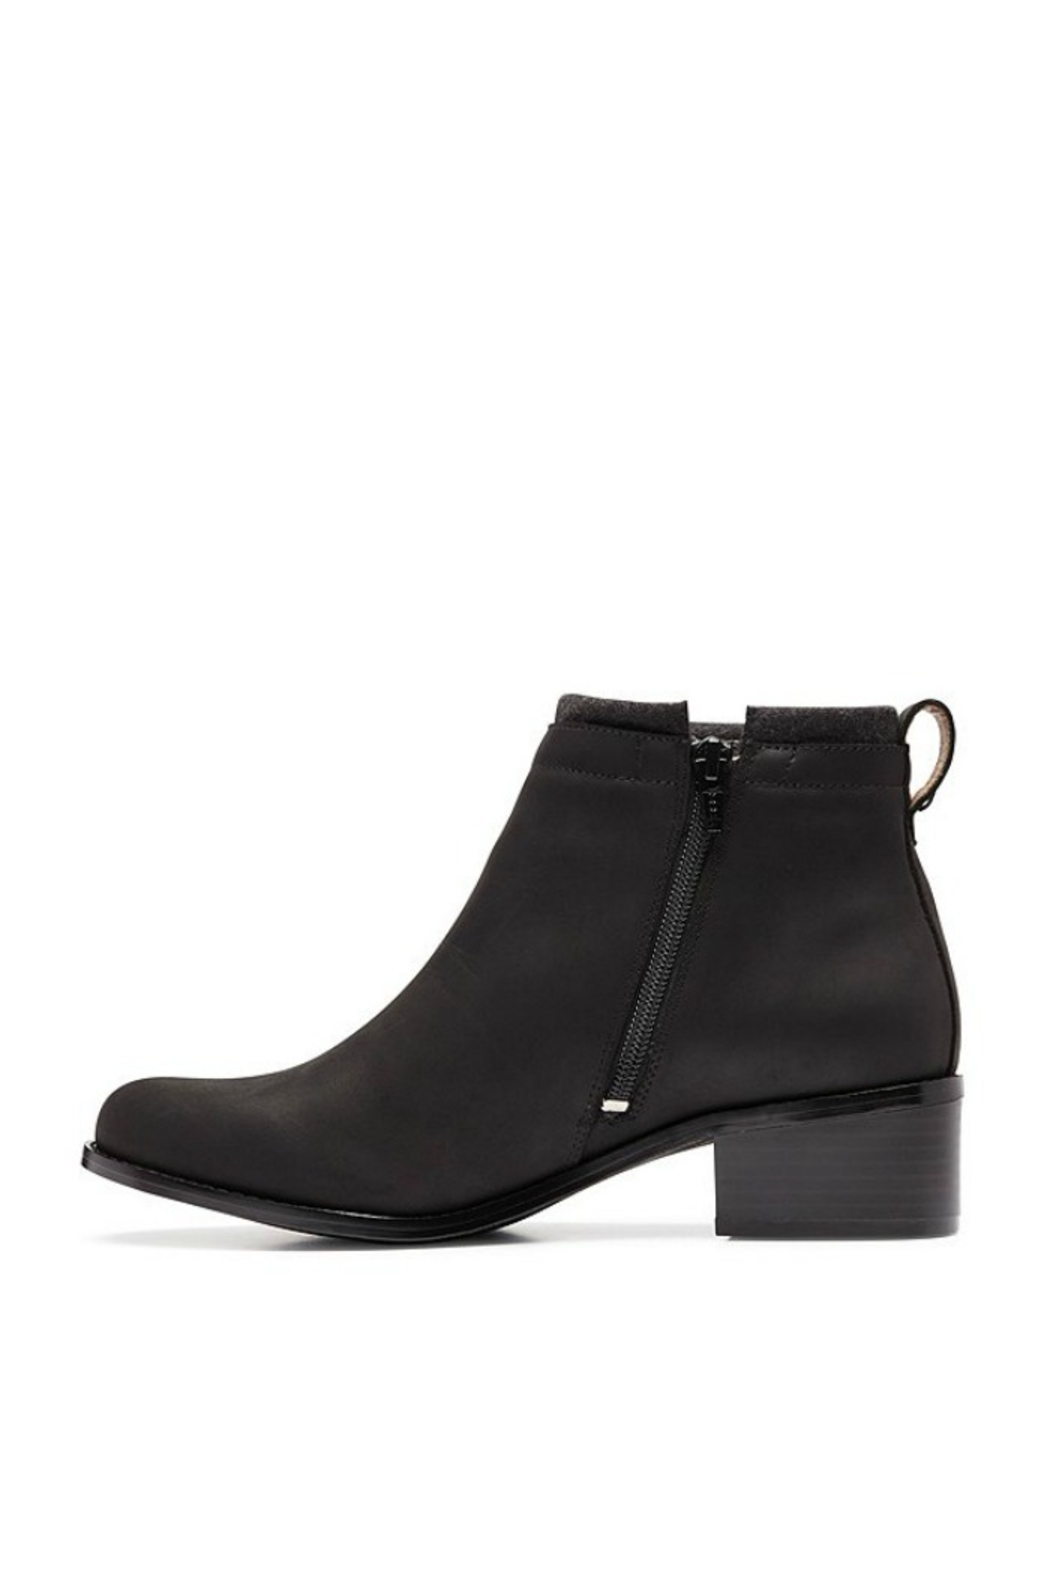 Vionic Joslyn Ankle Boot - Front Full Image